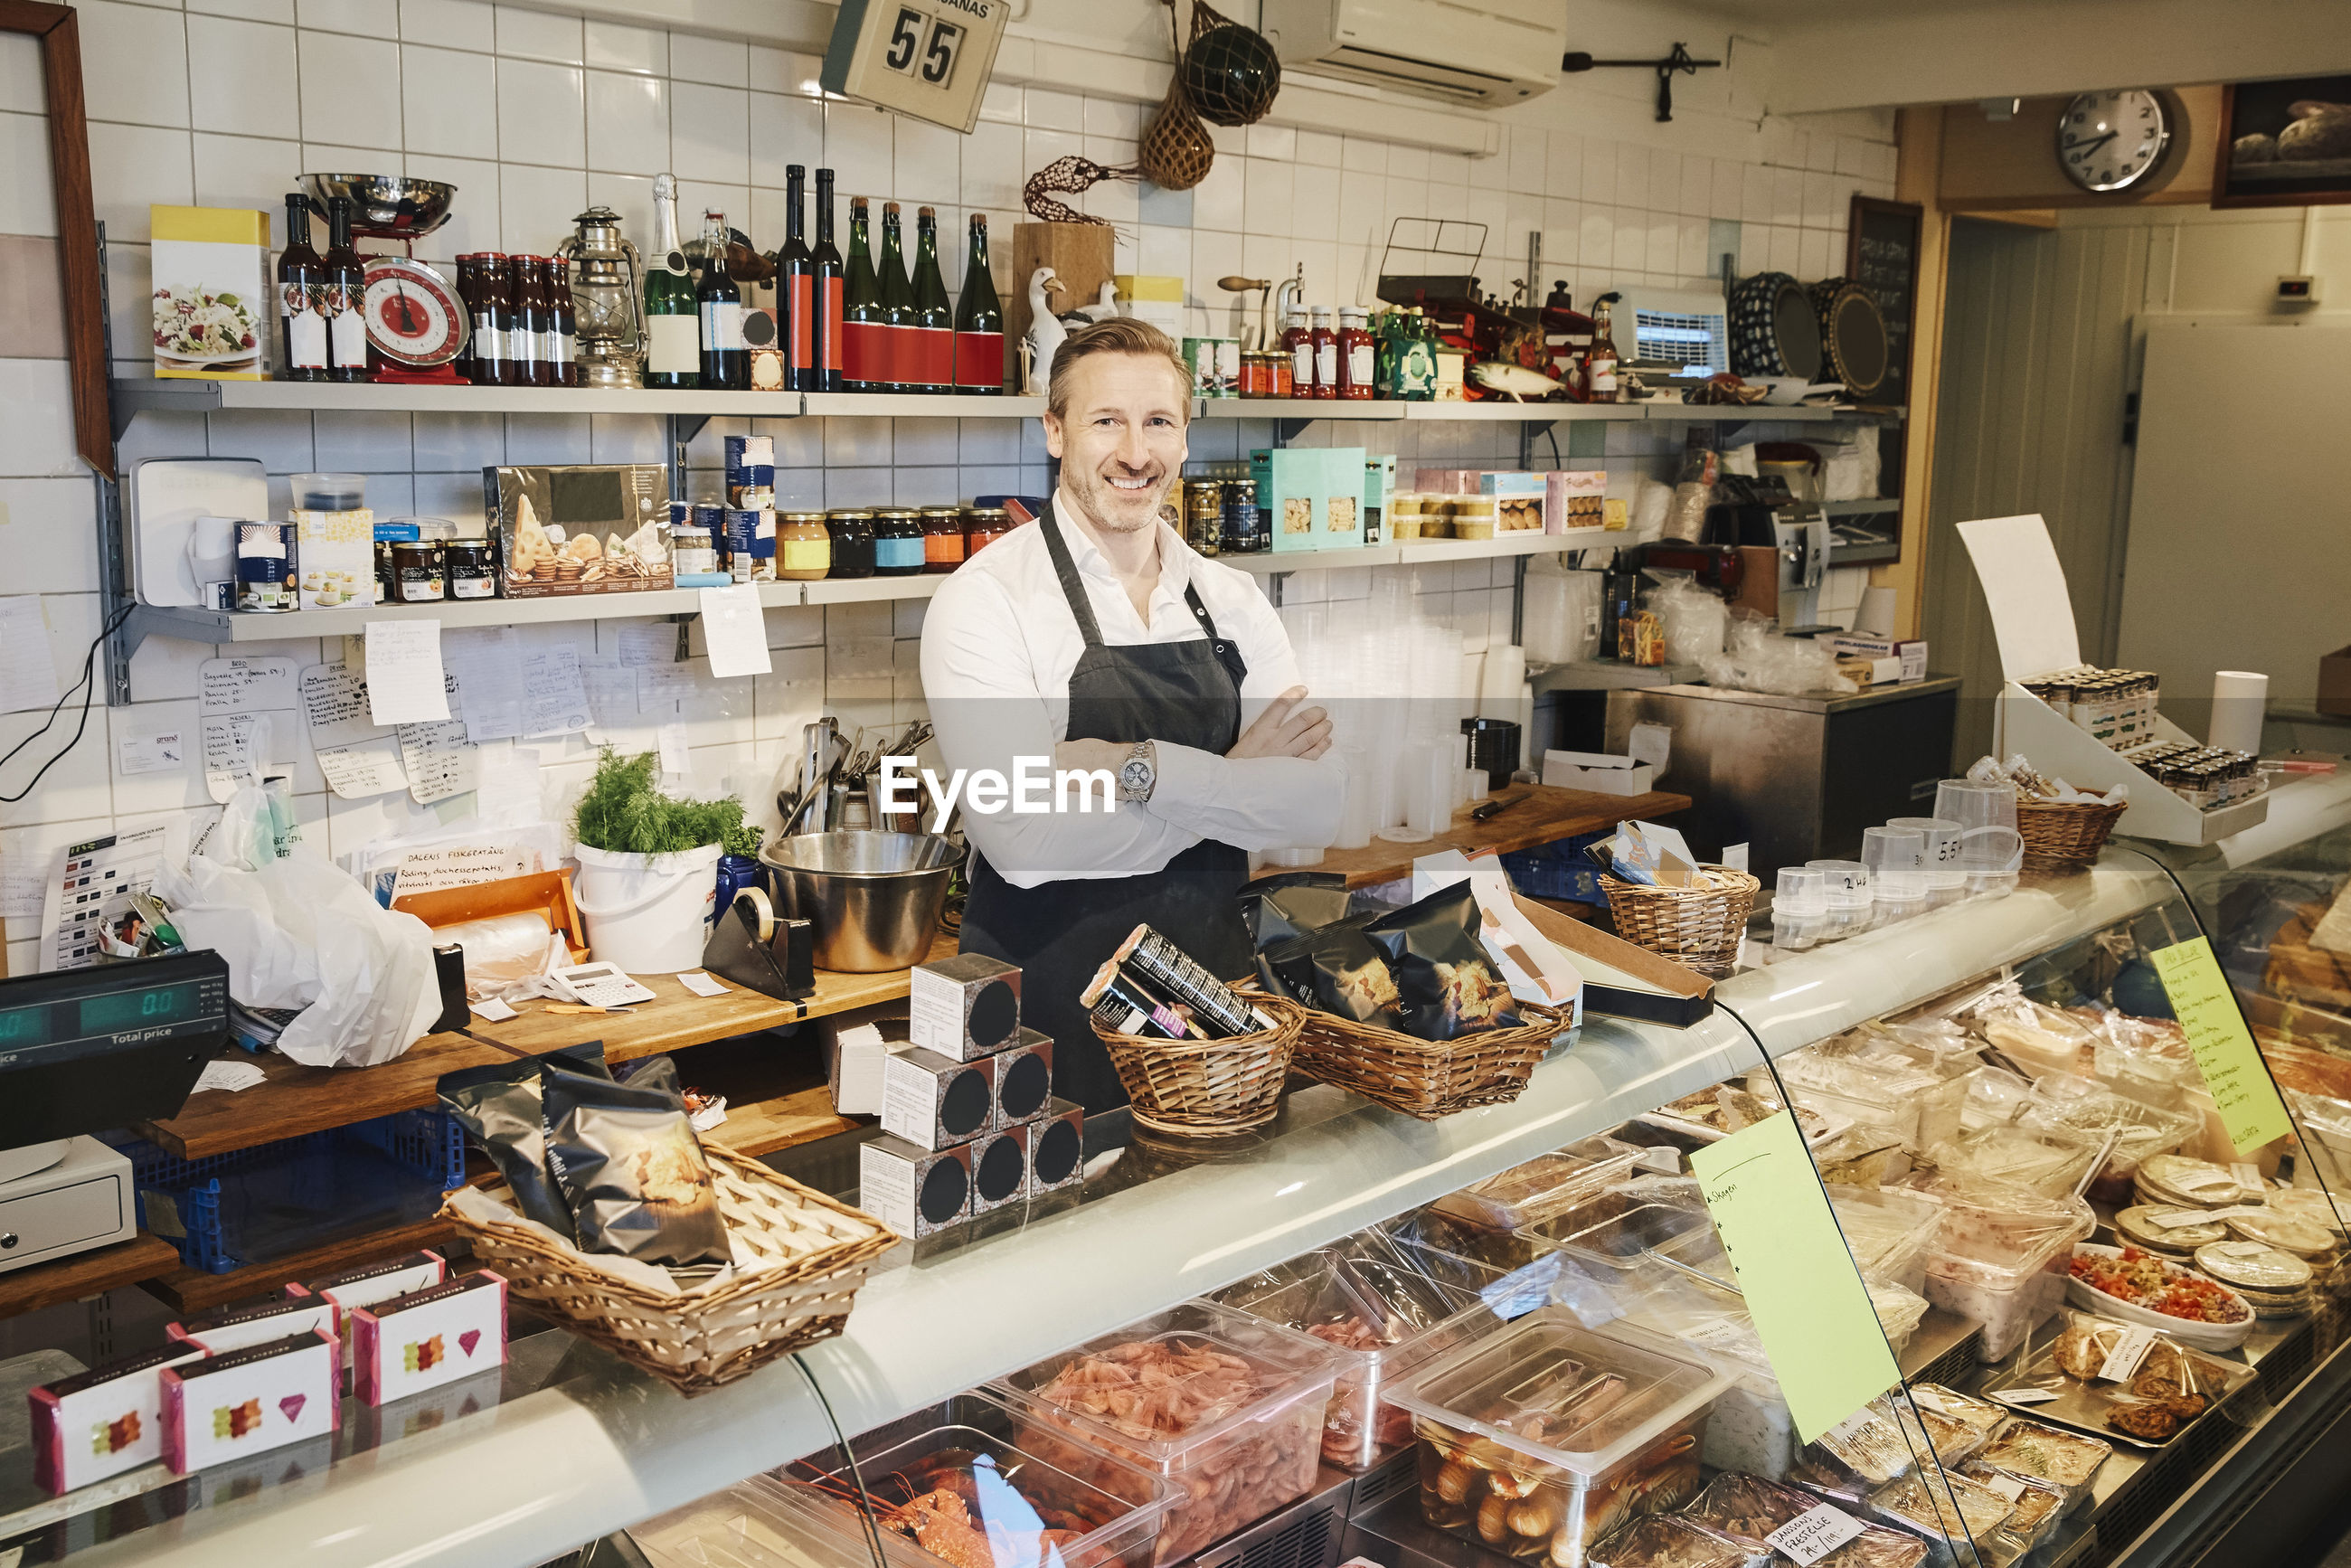 PORTRAIT OF WOMAN STANDING BY STORE